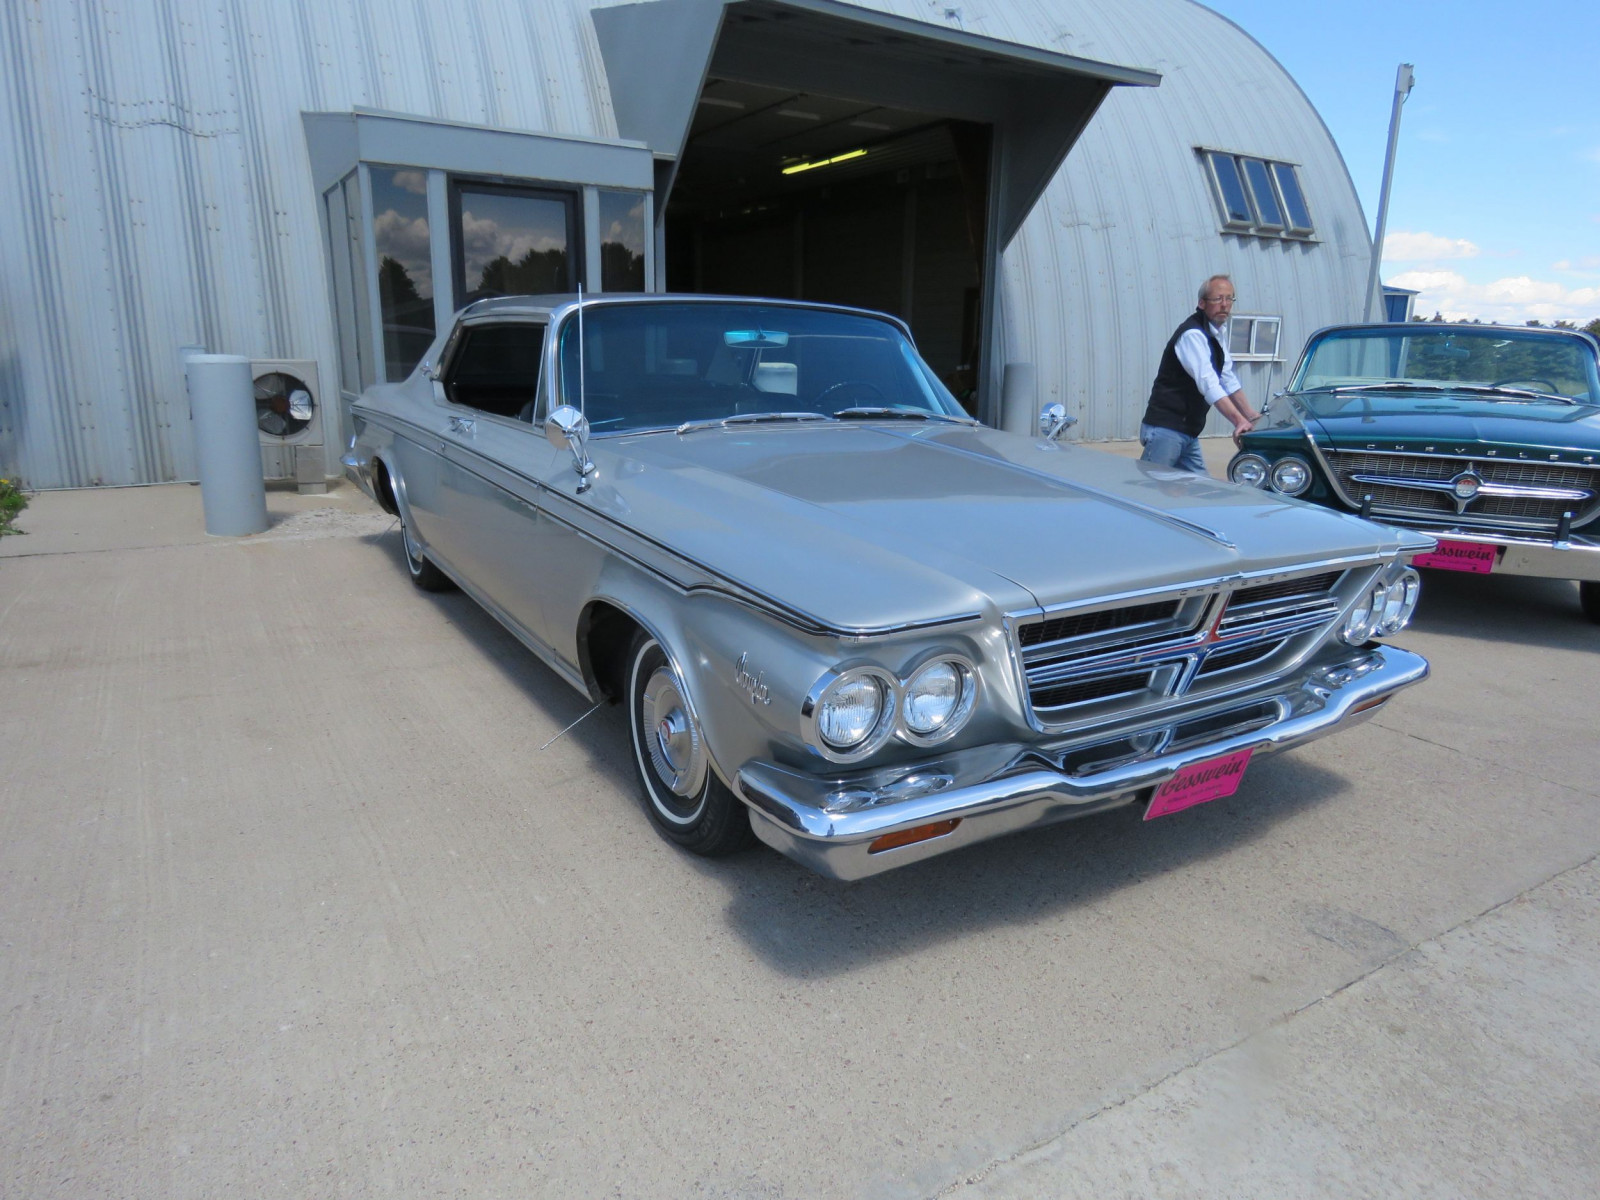 1964 Chrysler 300 Silver Edition 2dr HT - Image 4